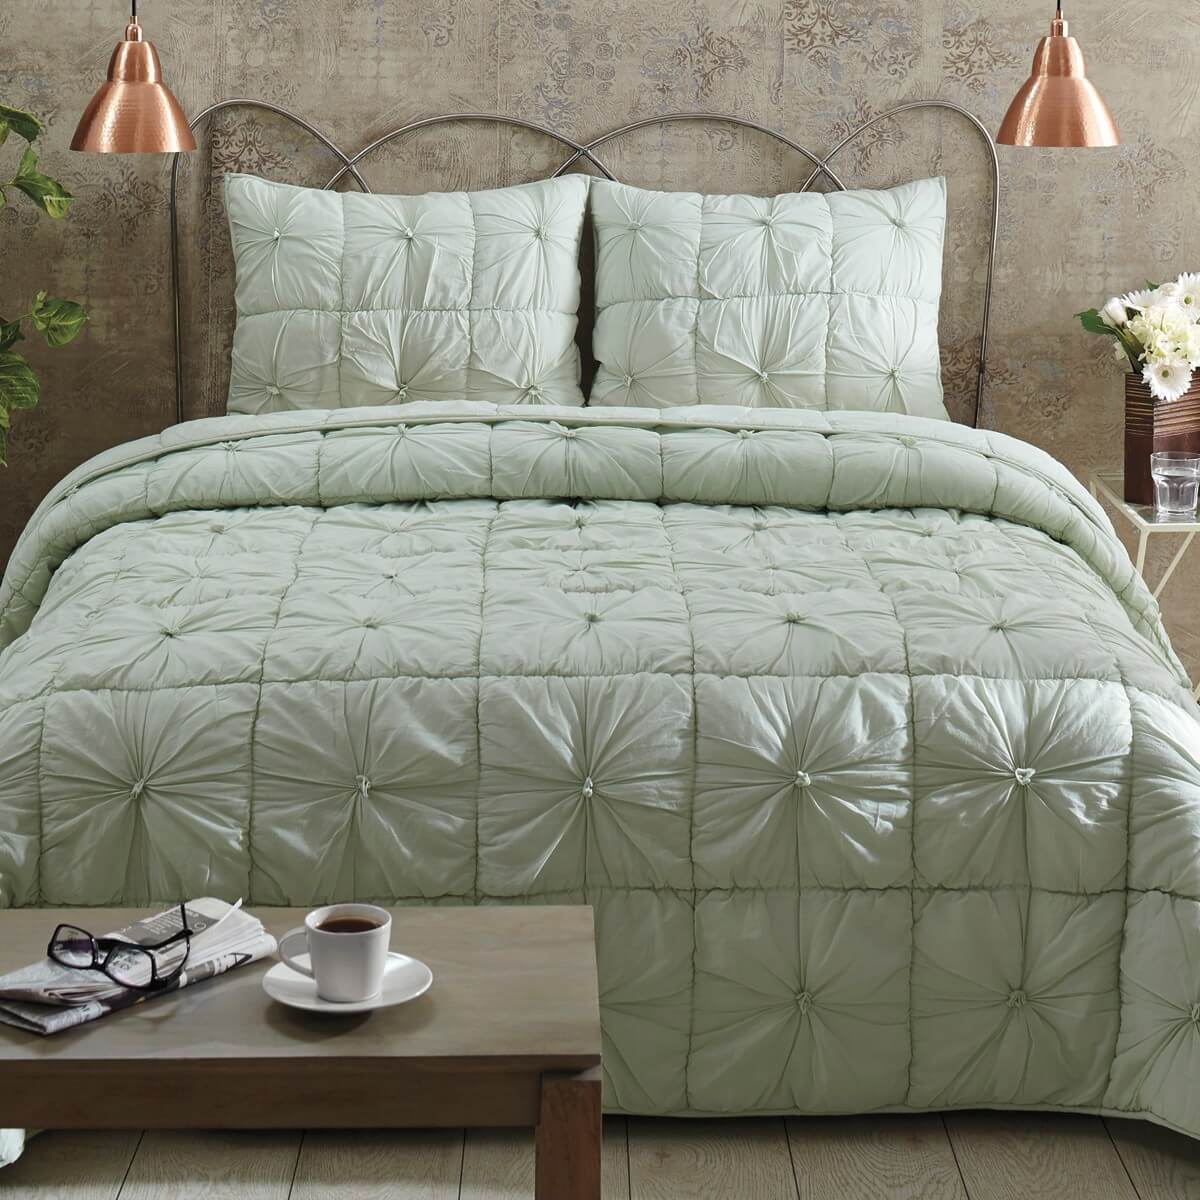 57fe0aecf119 Camille Mint Twin Quilt Set - Teton Timberline Trading